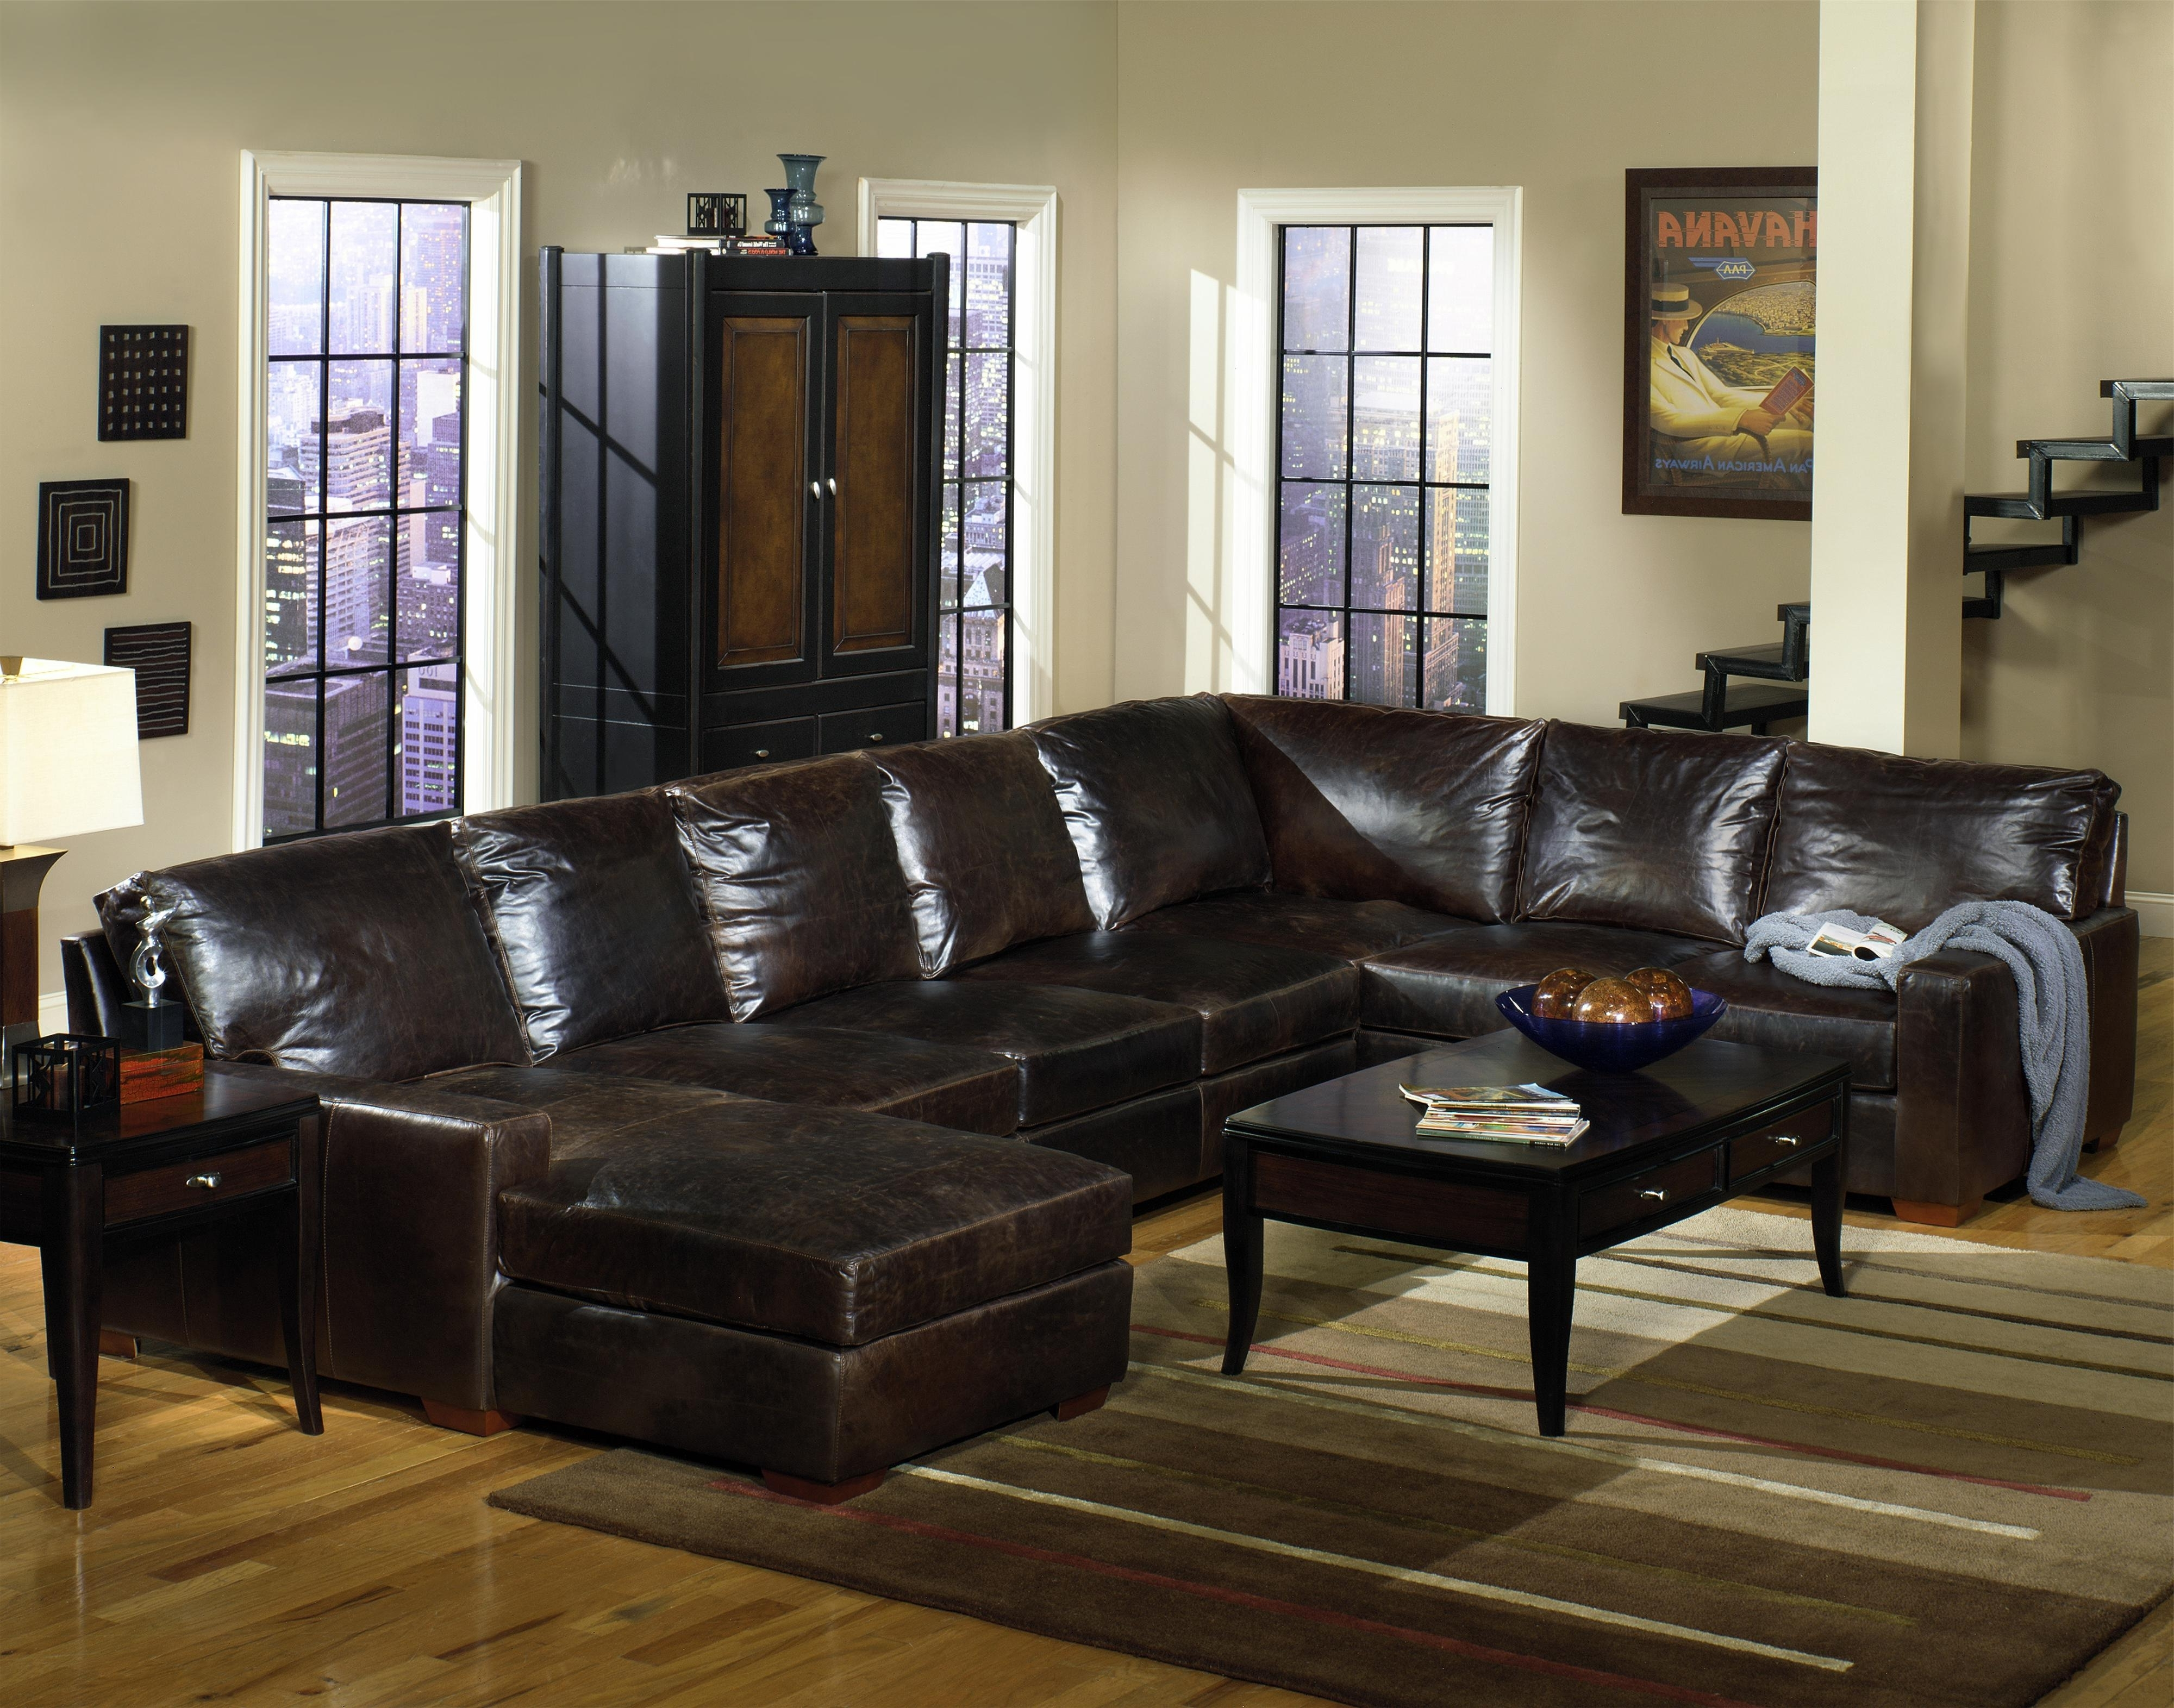 Leather Sectional Sofas With Chaise Inside Preferred Leather Sectional Sofa With Chaise Lounge Leather Sectional Sofas (View 7 of 15)